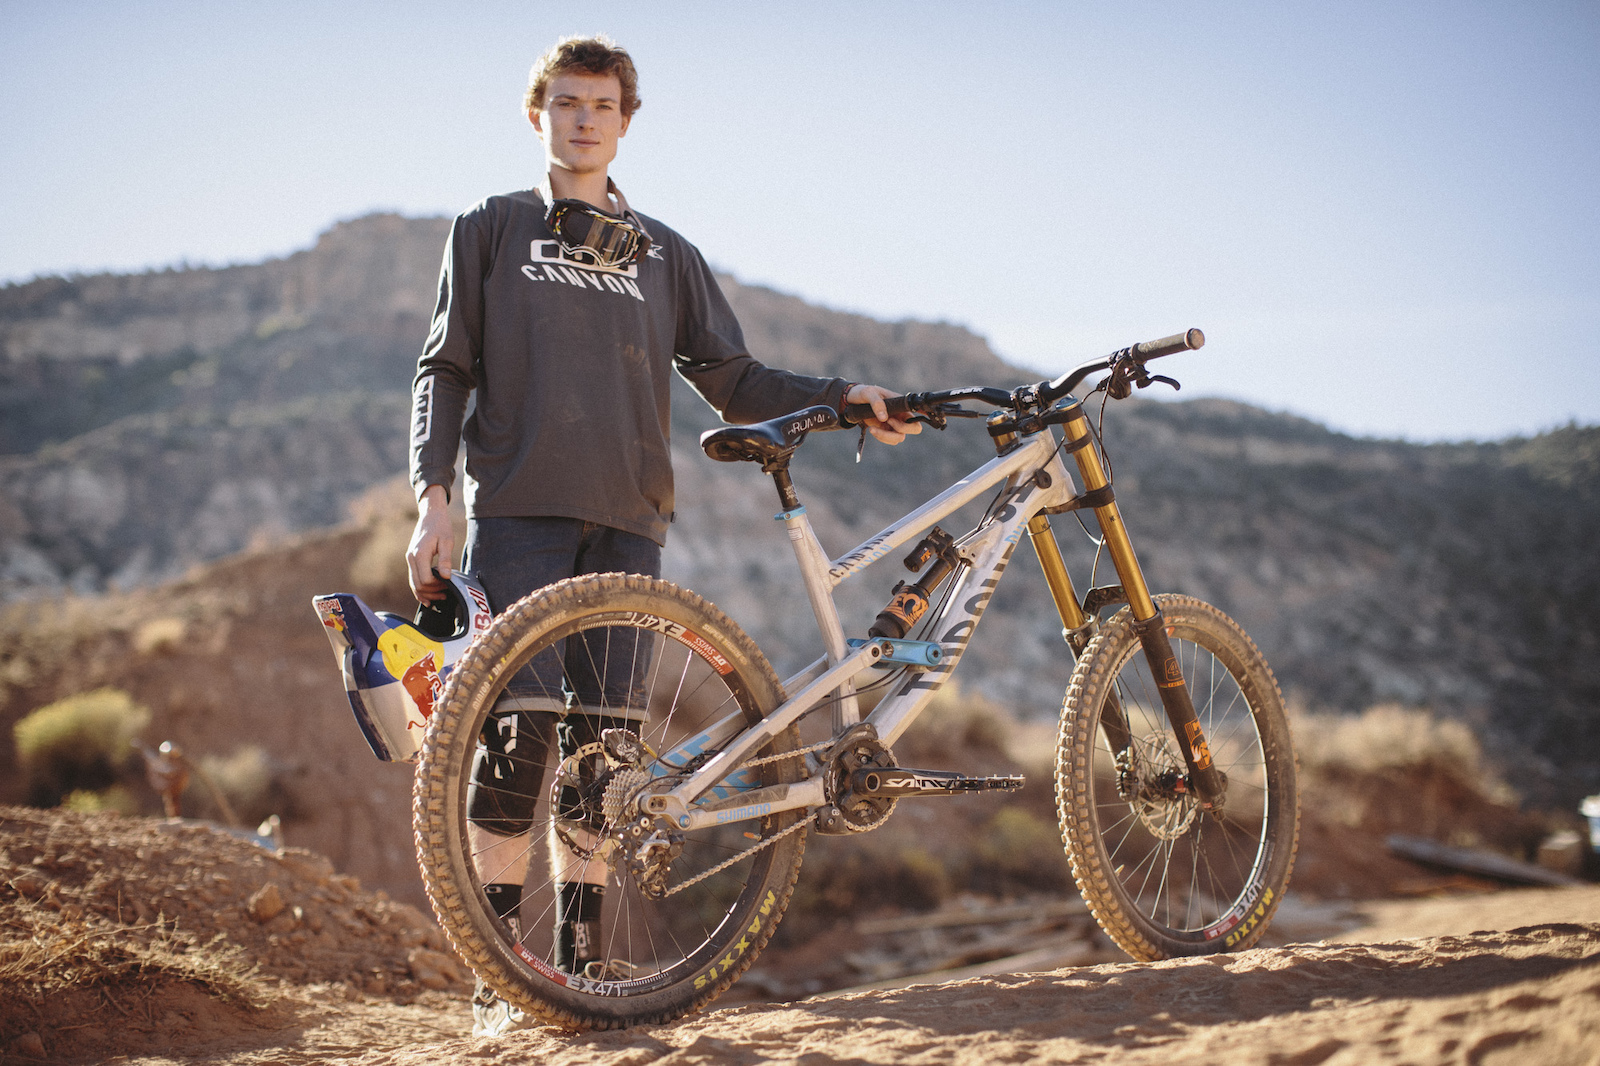 Thomas Genon at RedBull Rampage 2015 Virgin Utah USA